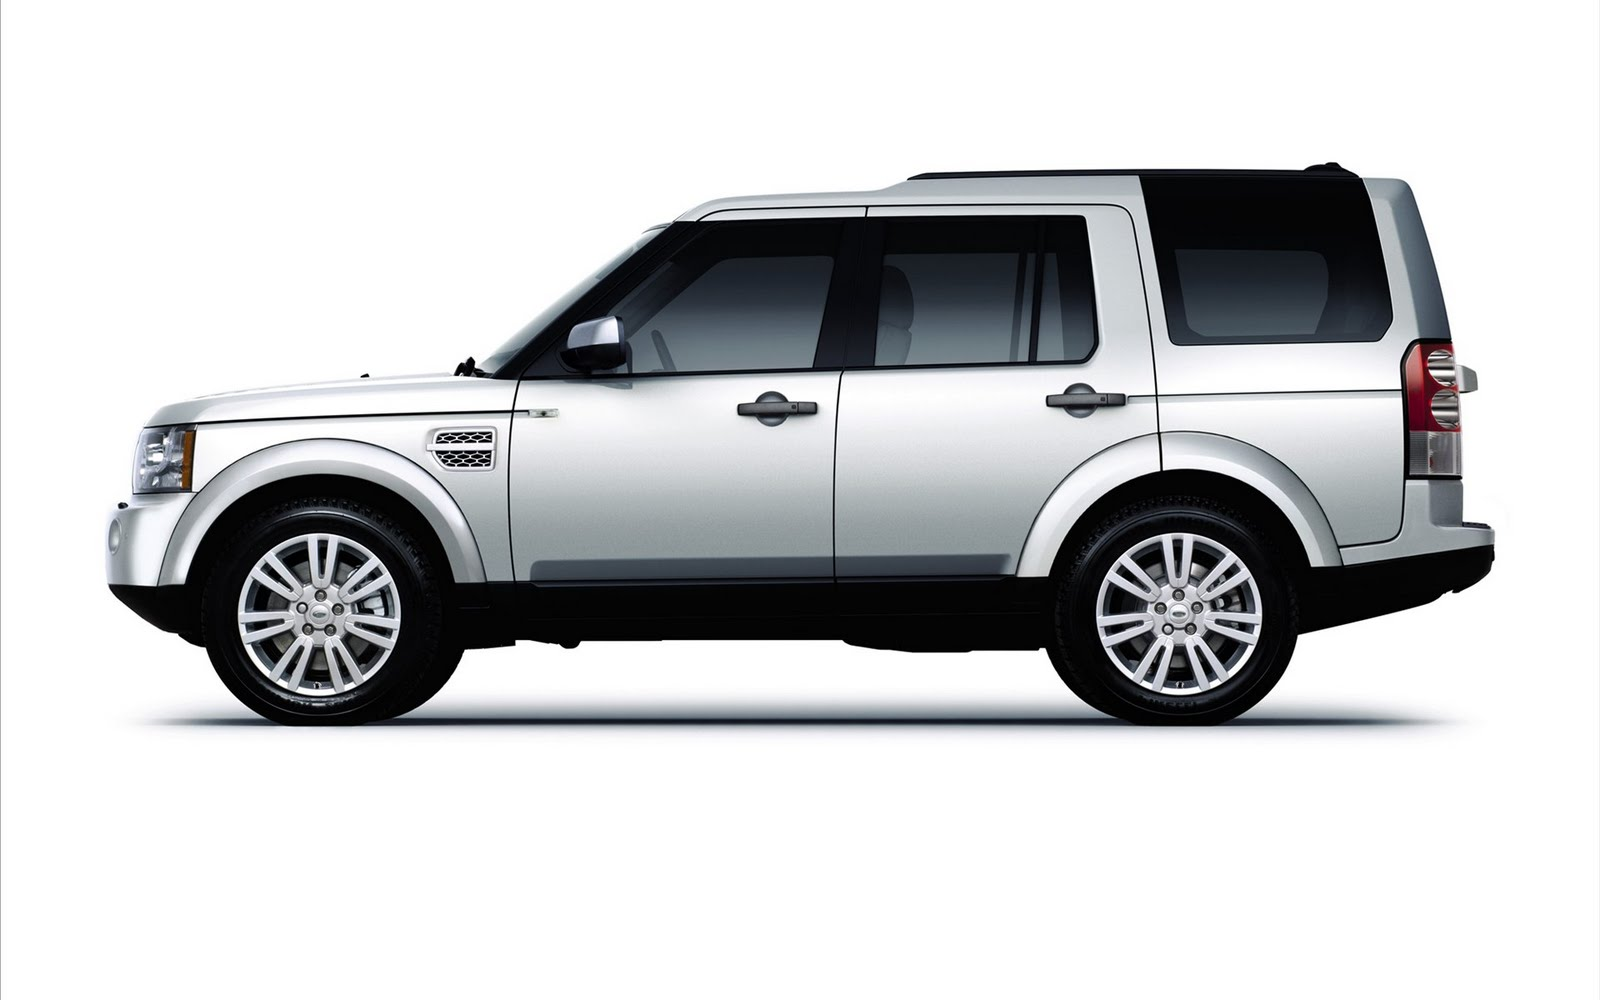 land rover discovery 4 2012 car wallpaper car pictures. Black Bedroom Furniture Sets. Home Design Ideas